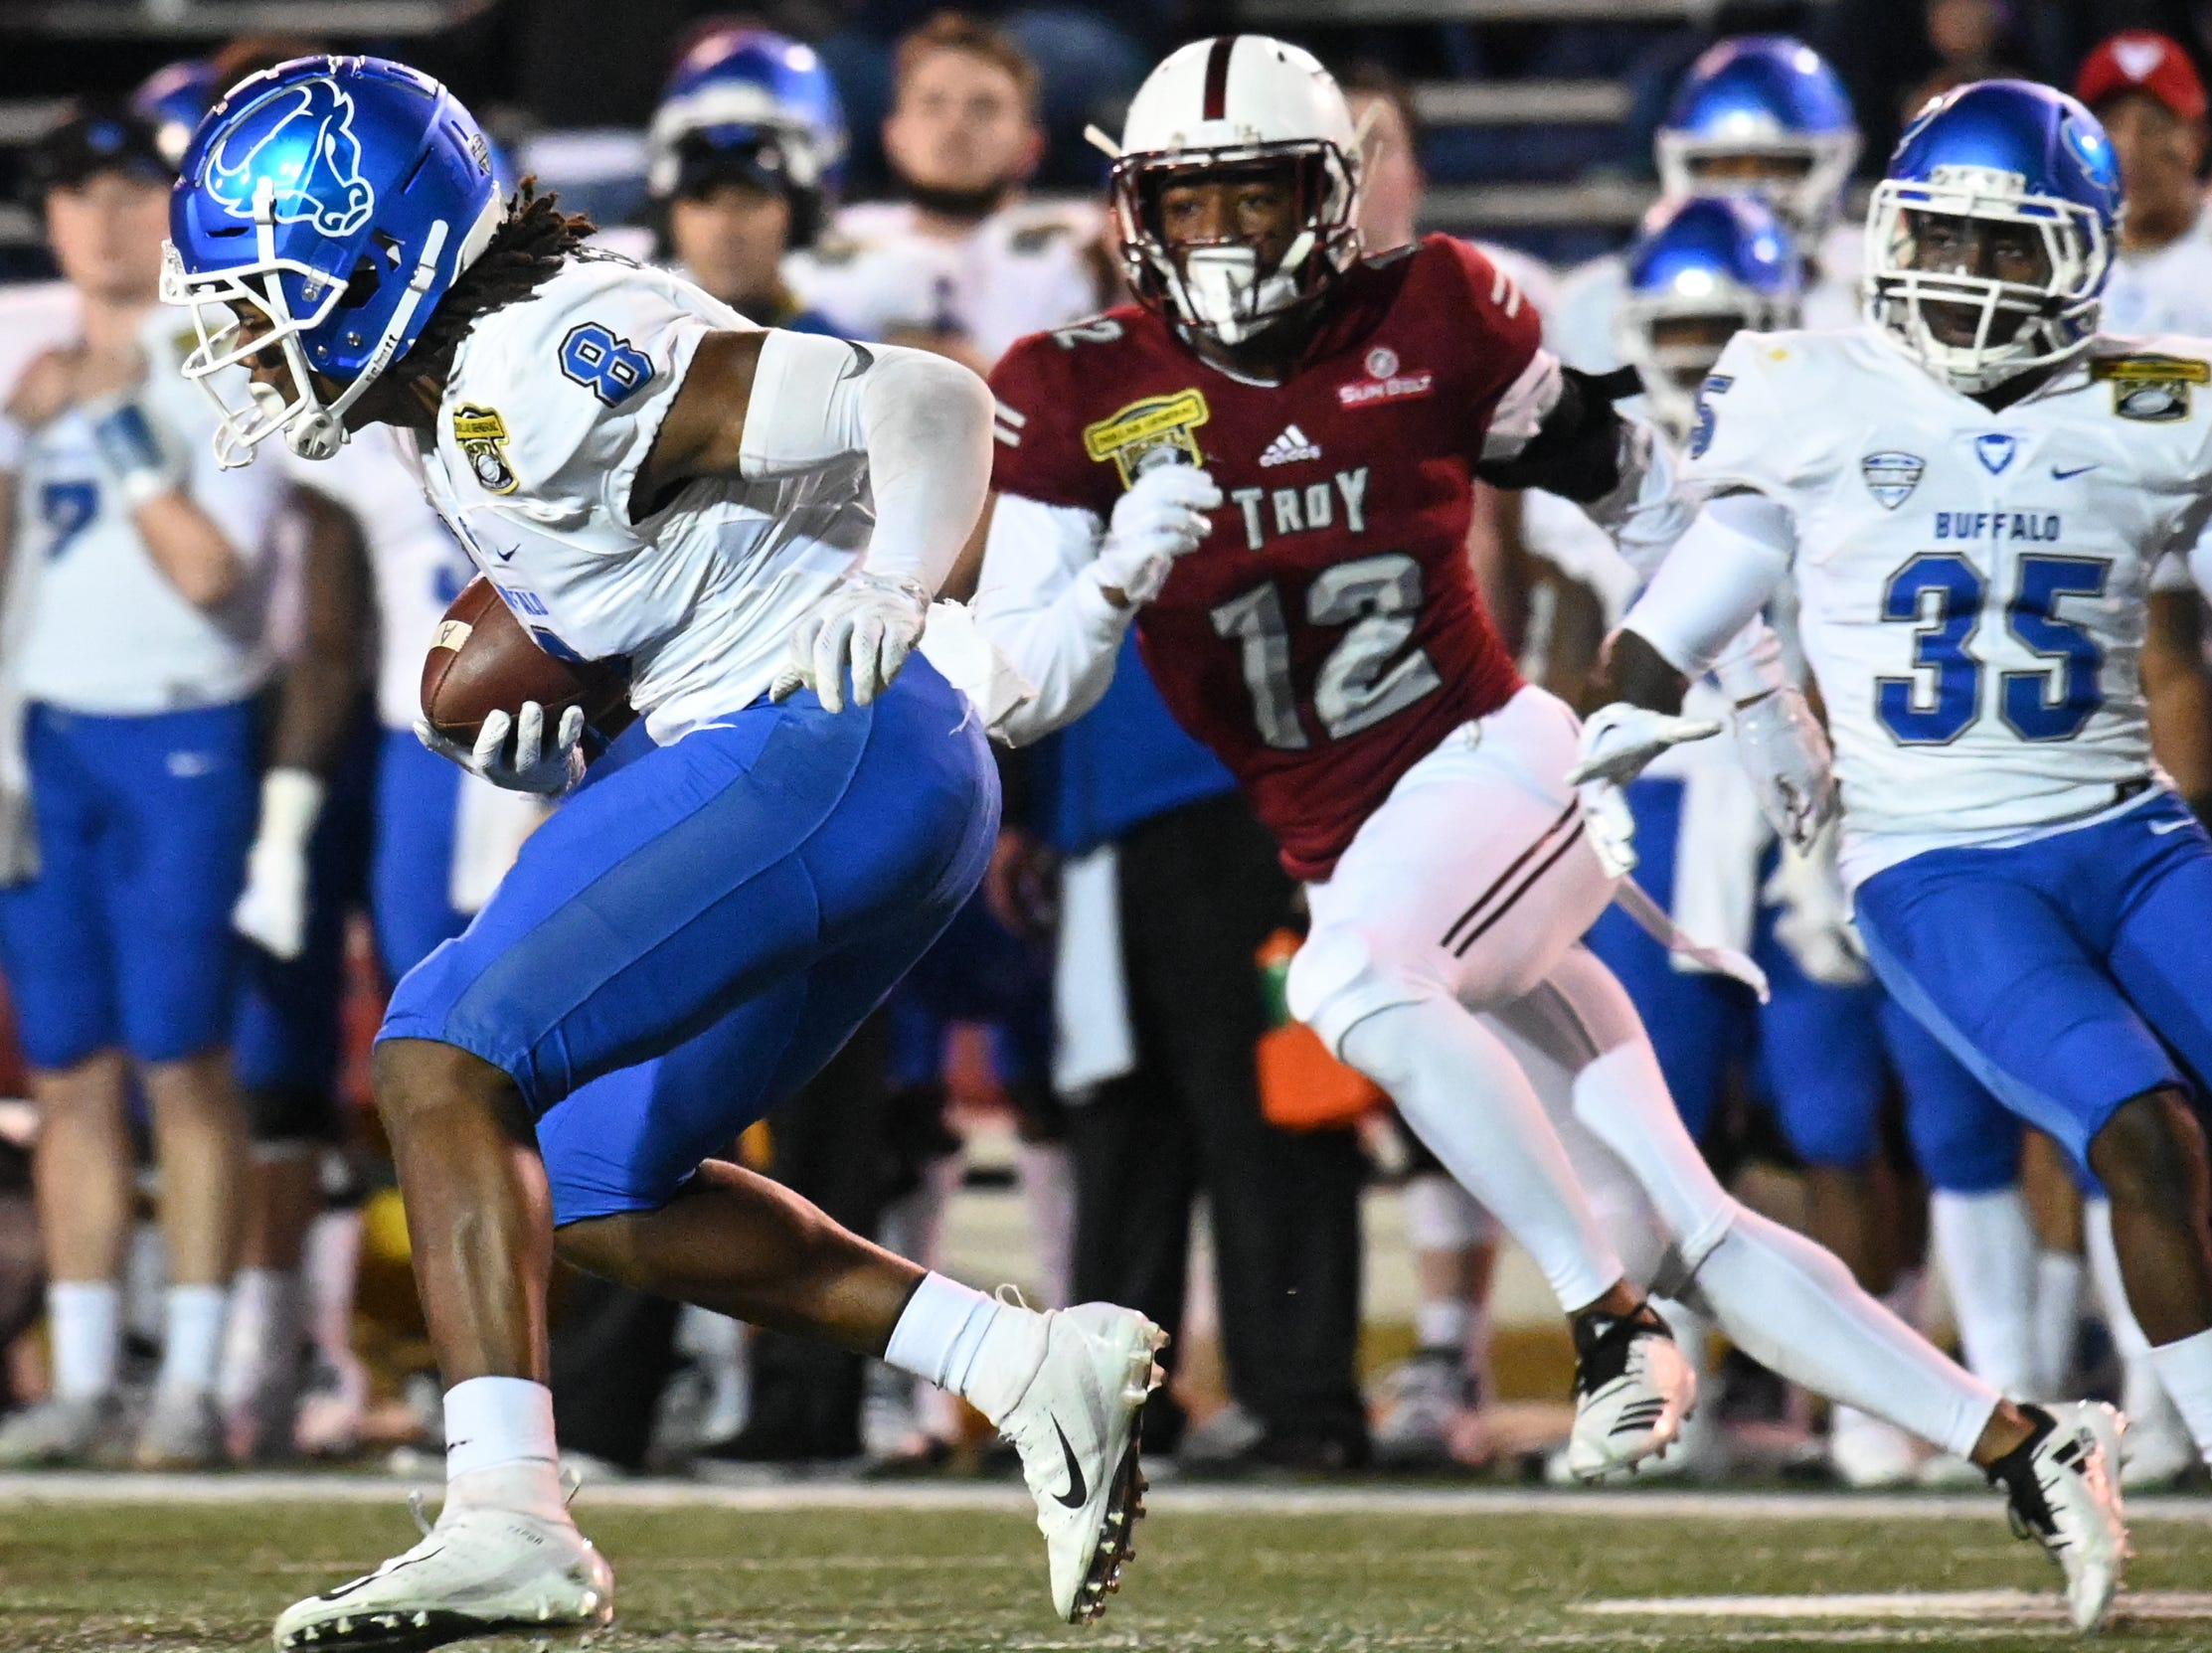 Buffalo Bulls wide receiver K.J. Osborn (8) runs the ball against during the Dollar General Bowl held at Ladd-Peebles Stadium in Mobile on Saturday, Dec. 22, 2018.